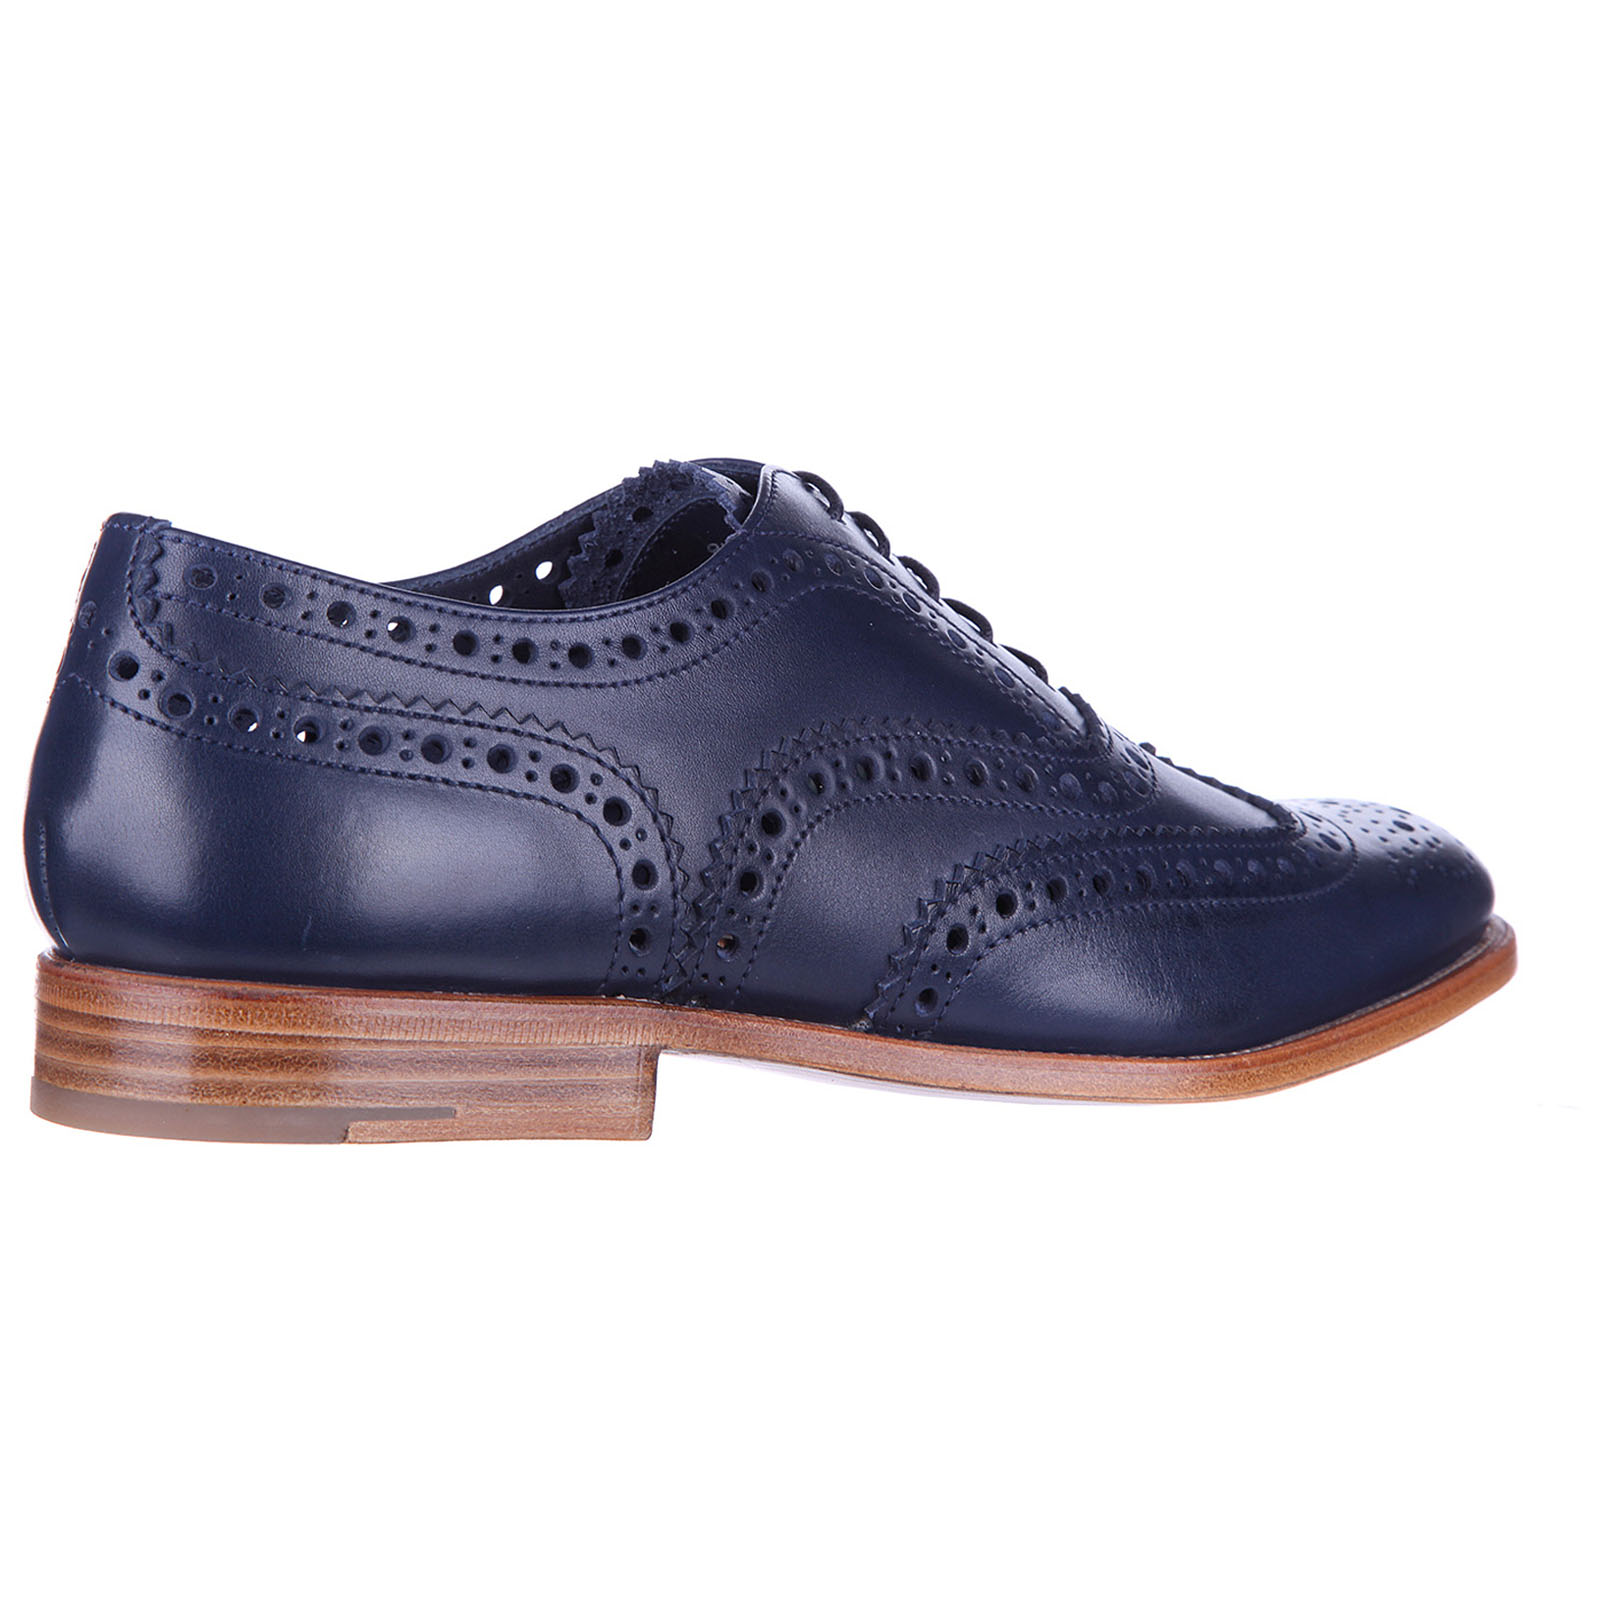 Women's classic leather lace up laced formal shoes burwood hole brogue